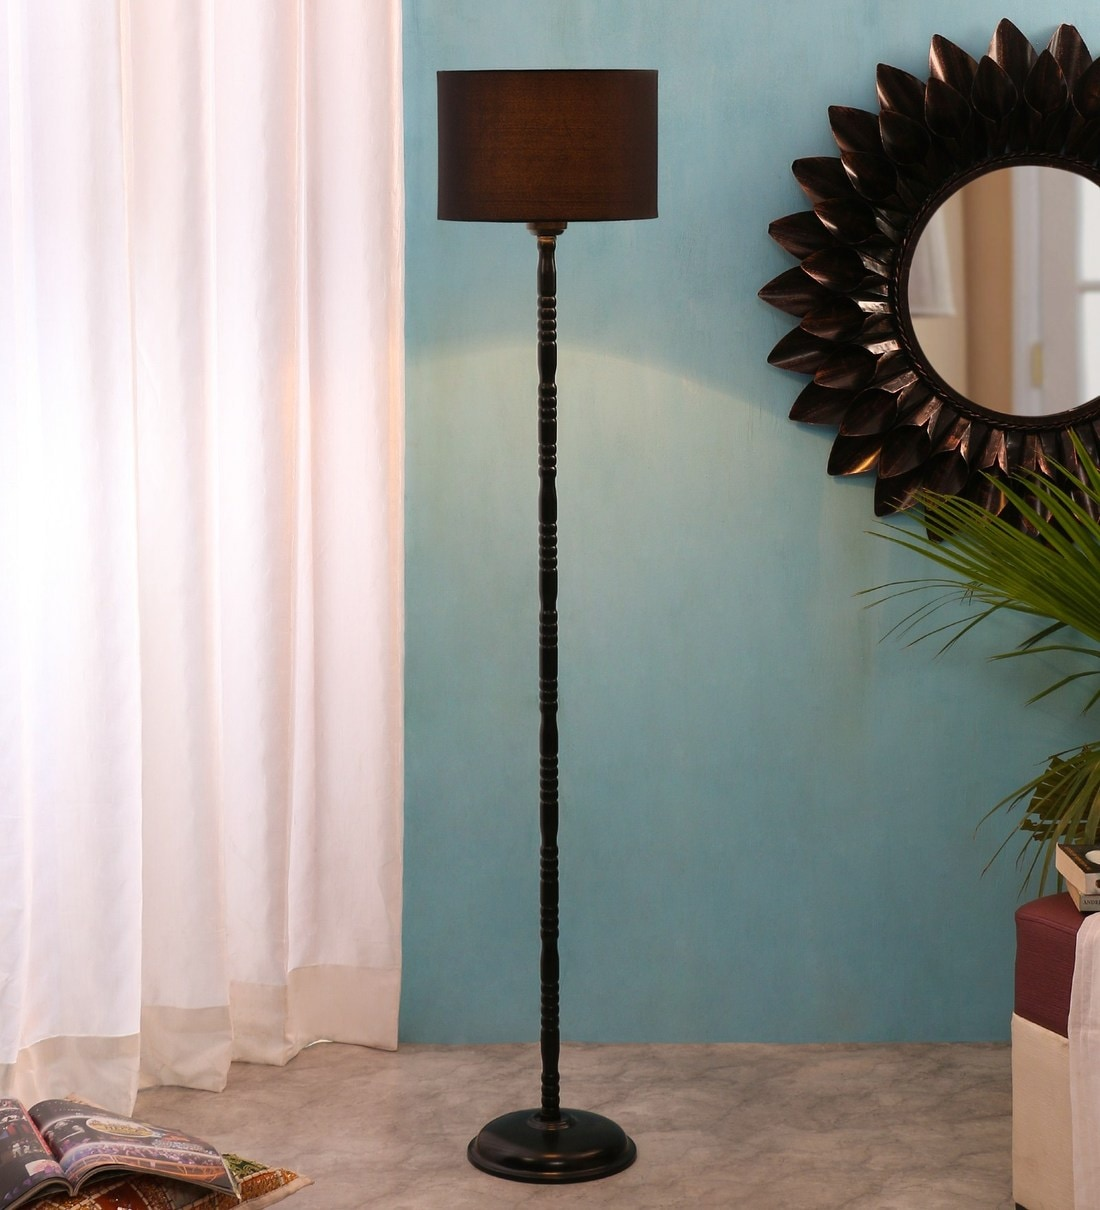 Buy Drum Designer Stick Wrought Iron Black Cotton Shade Floor Lamp With Black Base By New Era Online Mid Century Floor Lamps Floor Lamps Lamps Lighting Pepperfry Product